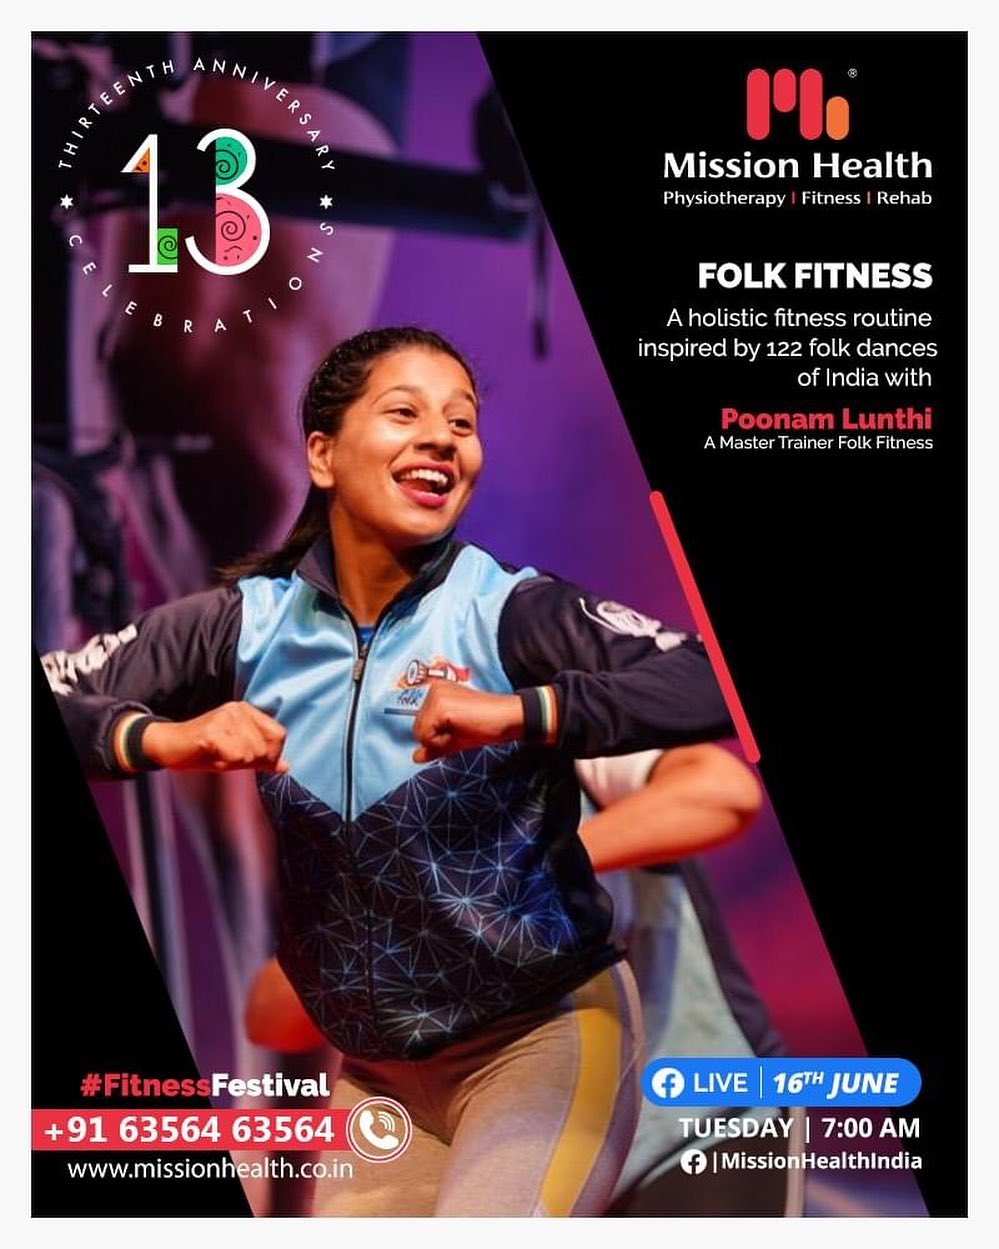 Dance is a powerful tool to maintain fitness. Be it physical or mental fitness. It also helps reducing fat and take us back in shape! Let us experience our glorious culture of Folk Dance as our fitness regime.  Take a step towards